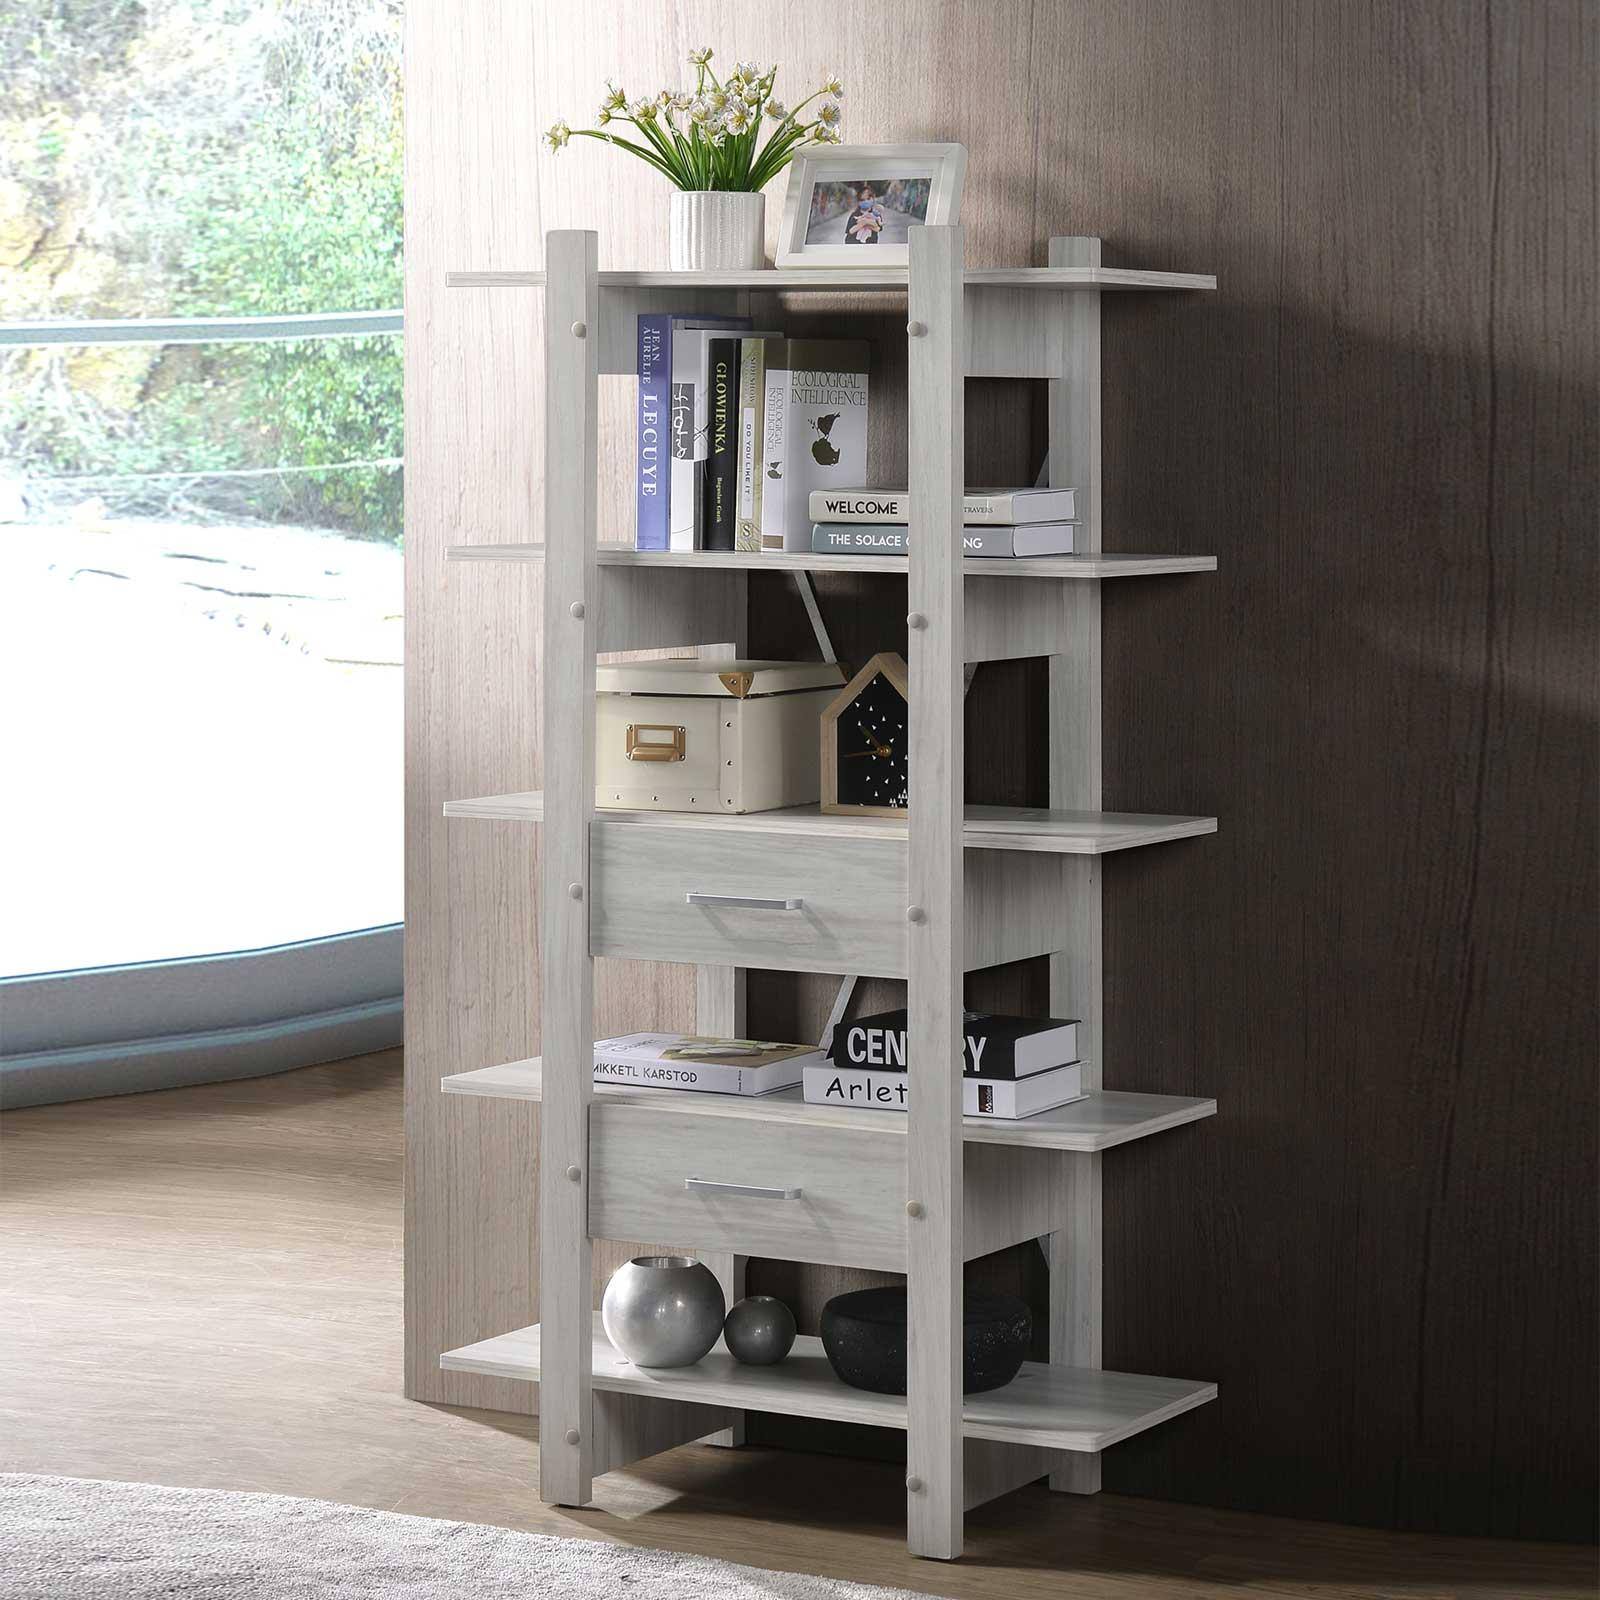 Bookshelf in White Oak (Free Installation + Delivery) Display Cabinet Shelf Bookcase E-LIVING Furniture